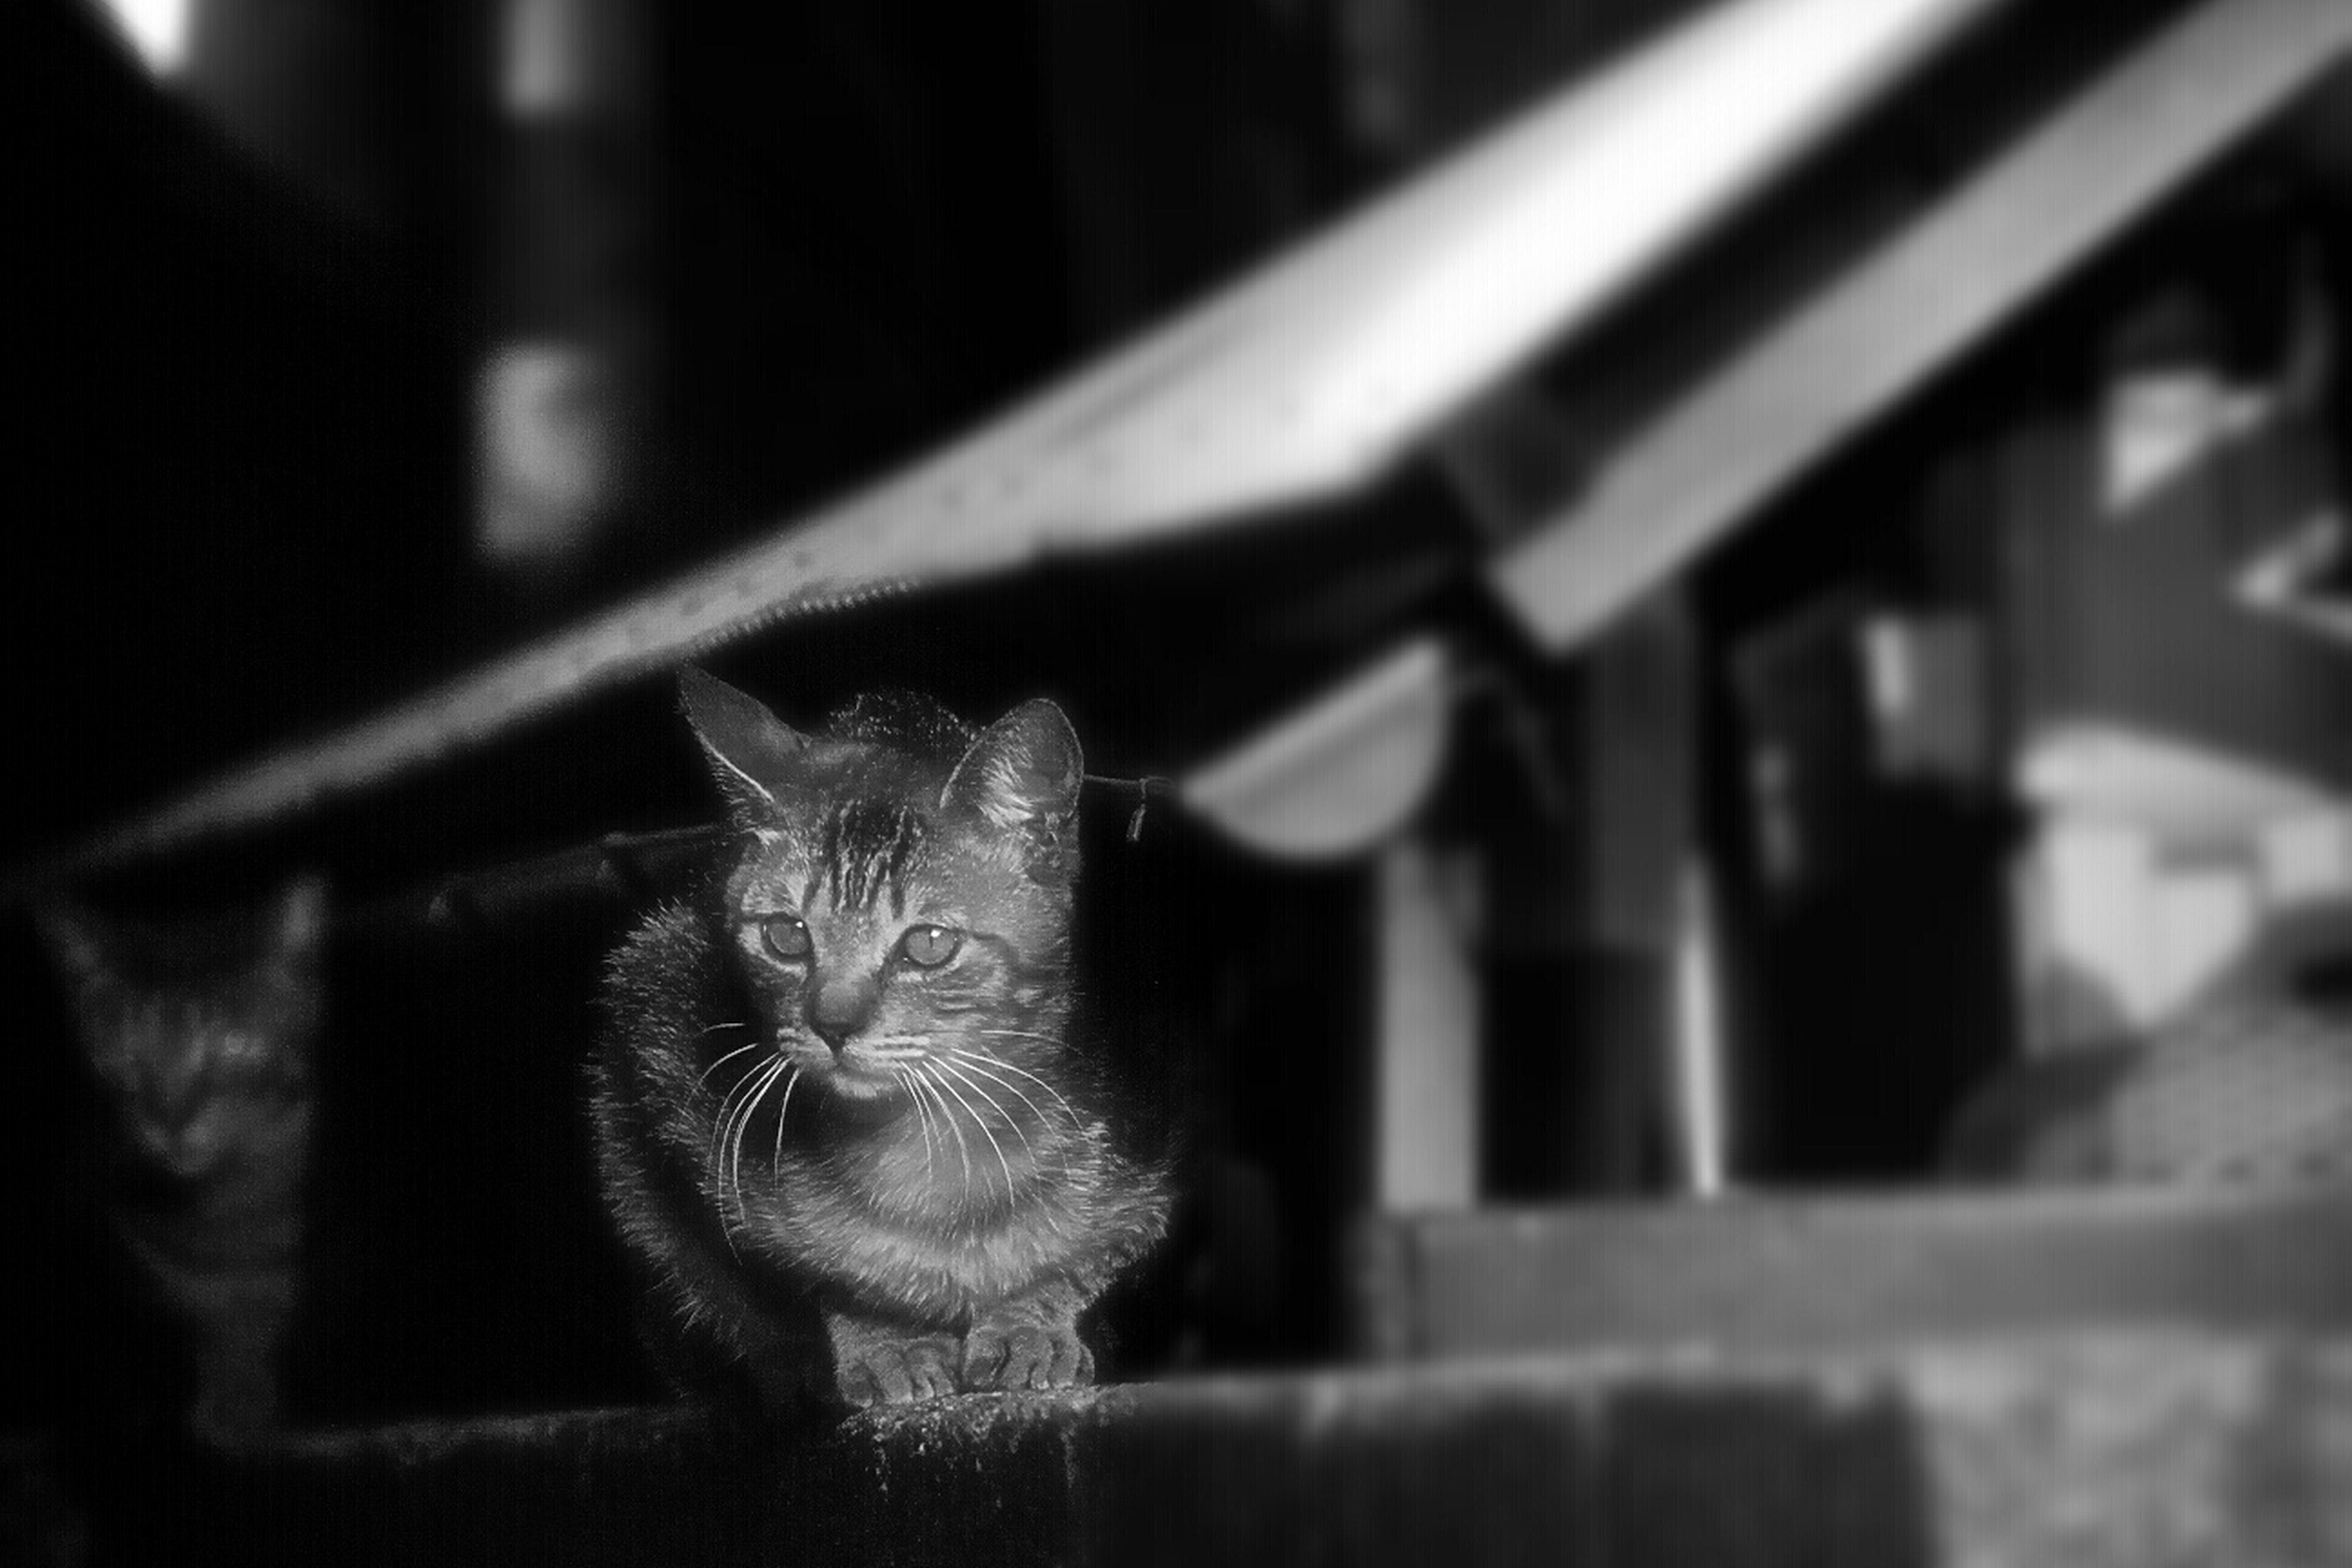 animal themes, focus on foreground, one animal, selective focus, indoors, close-up, domestic cat, mammal, domestic animals, cat, no people, feline, wood - material, day, whisker, pets, animal head, metal, wildlife